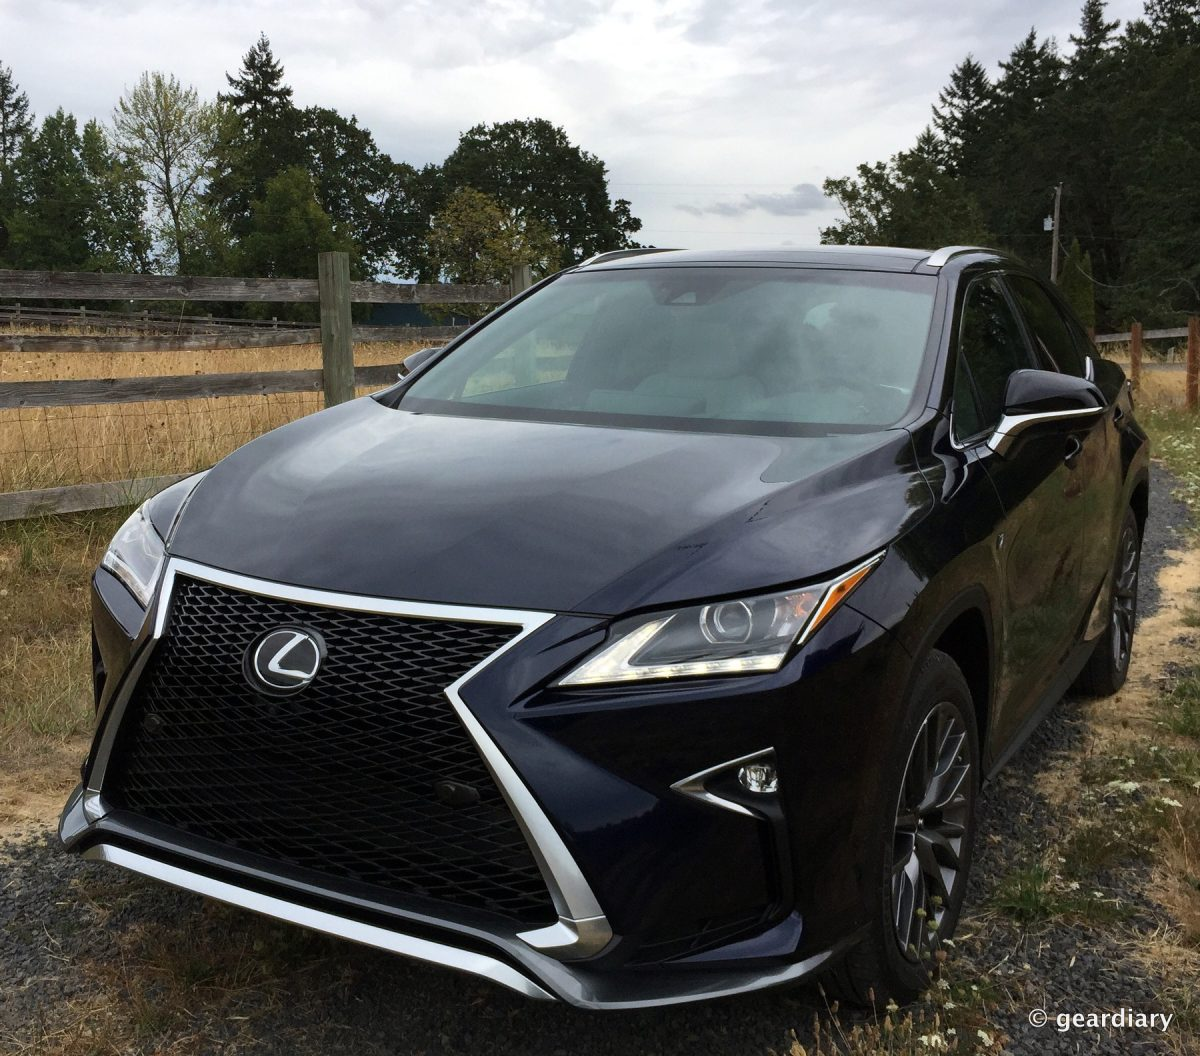 Lexus Is 350 Sport: The 2016 Lexus RX 350 F SPORT First Drive • GearDiary